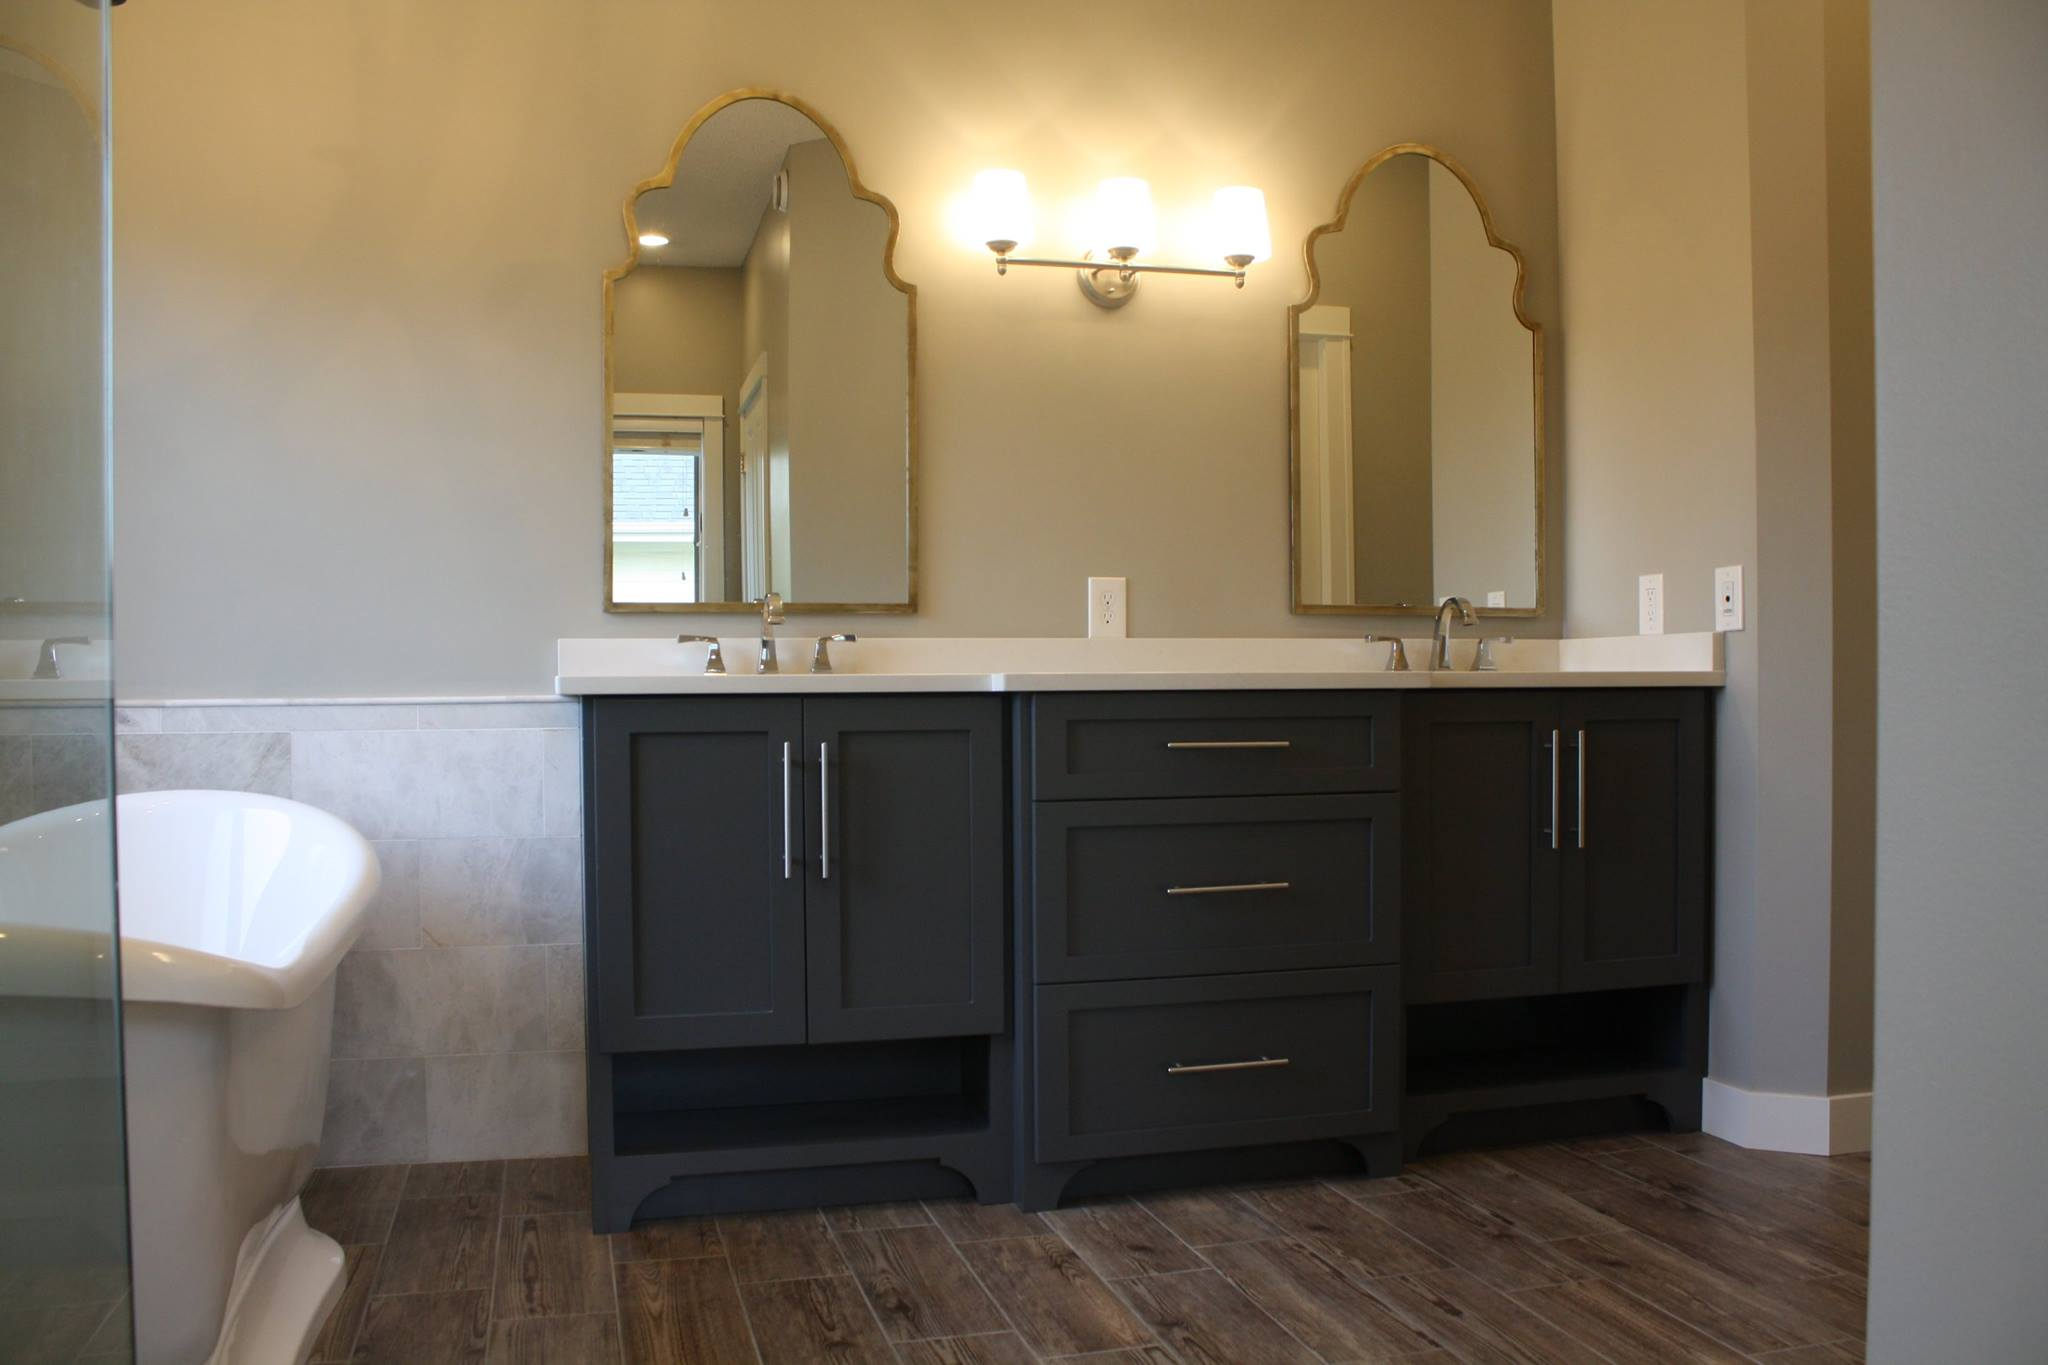 Bathroom Remodel Bath Vanity Lake Elmo Mn Custom Cabinets